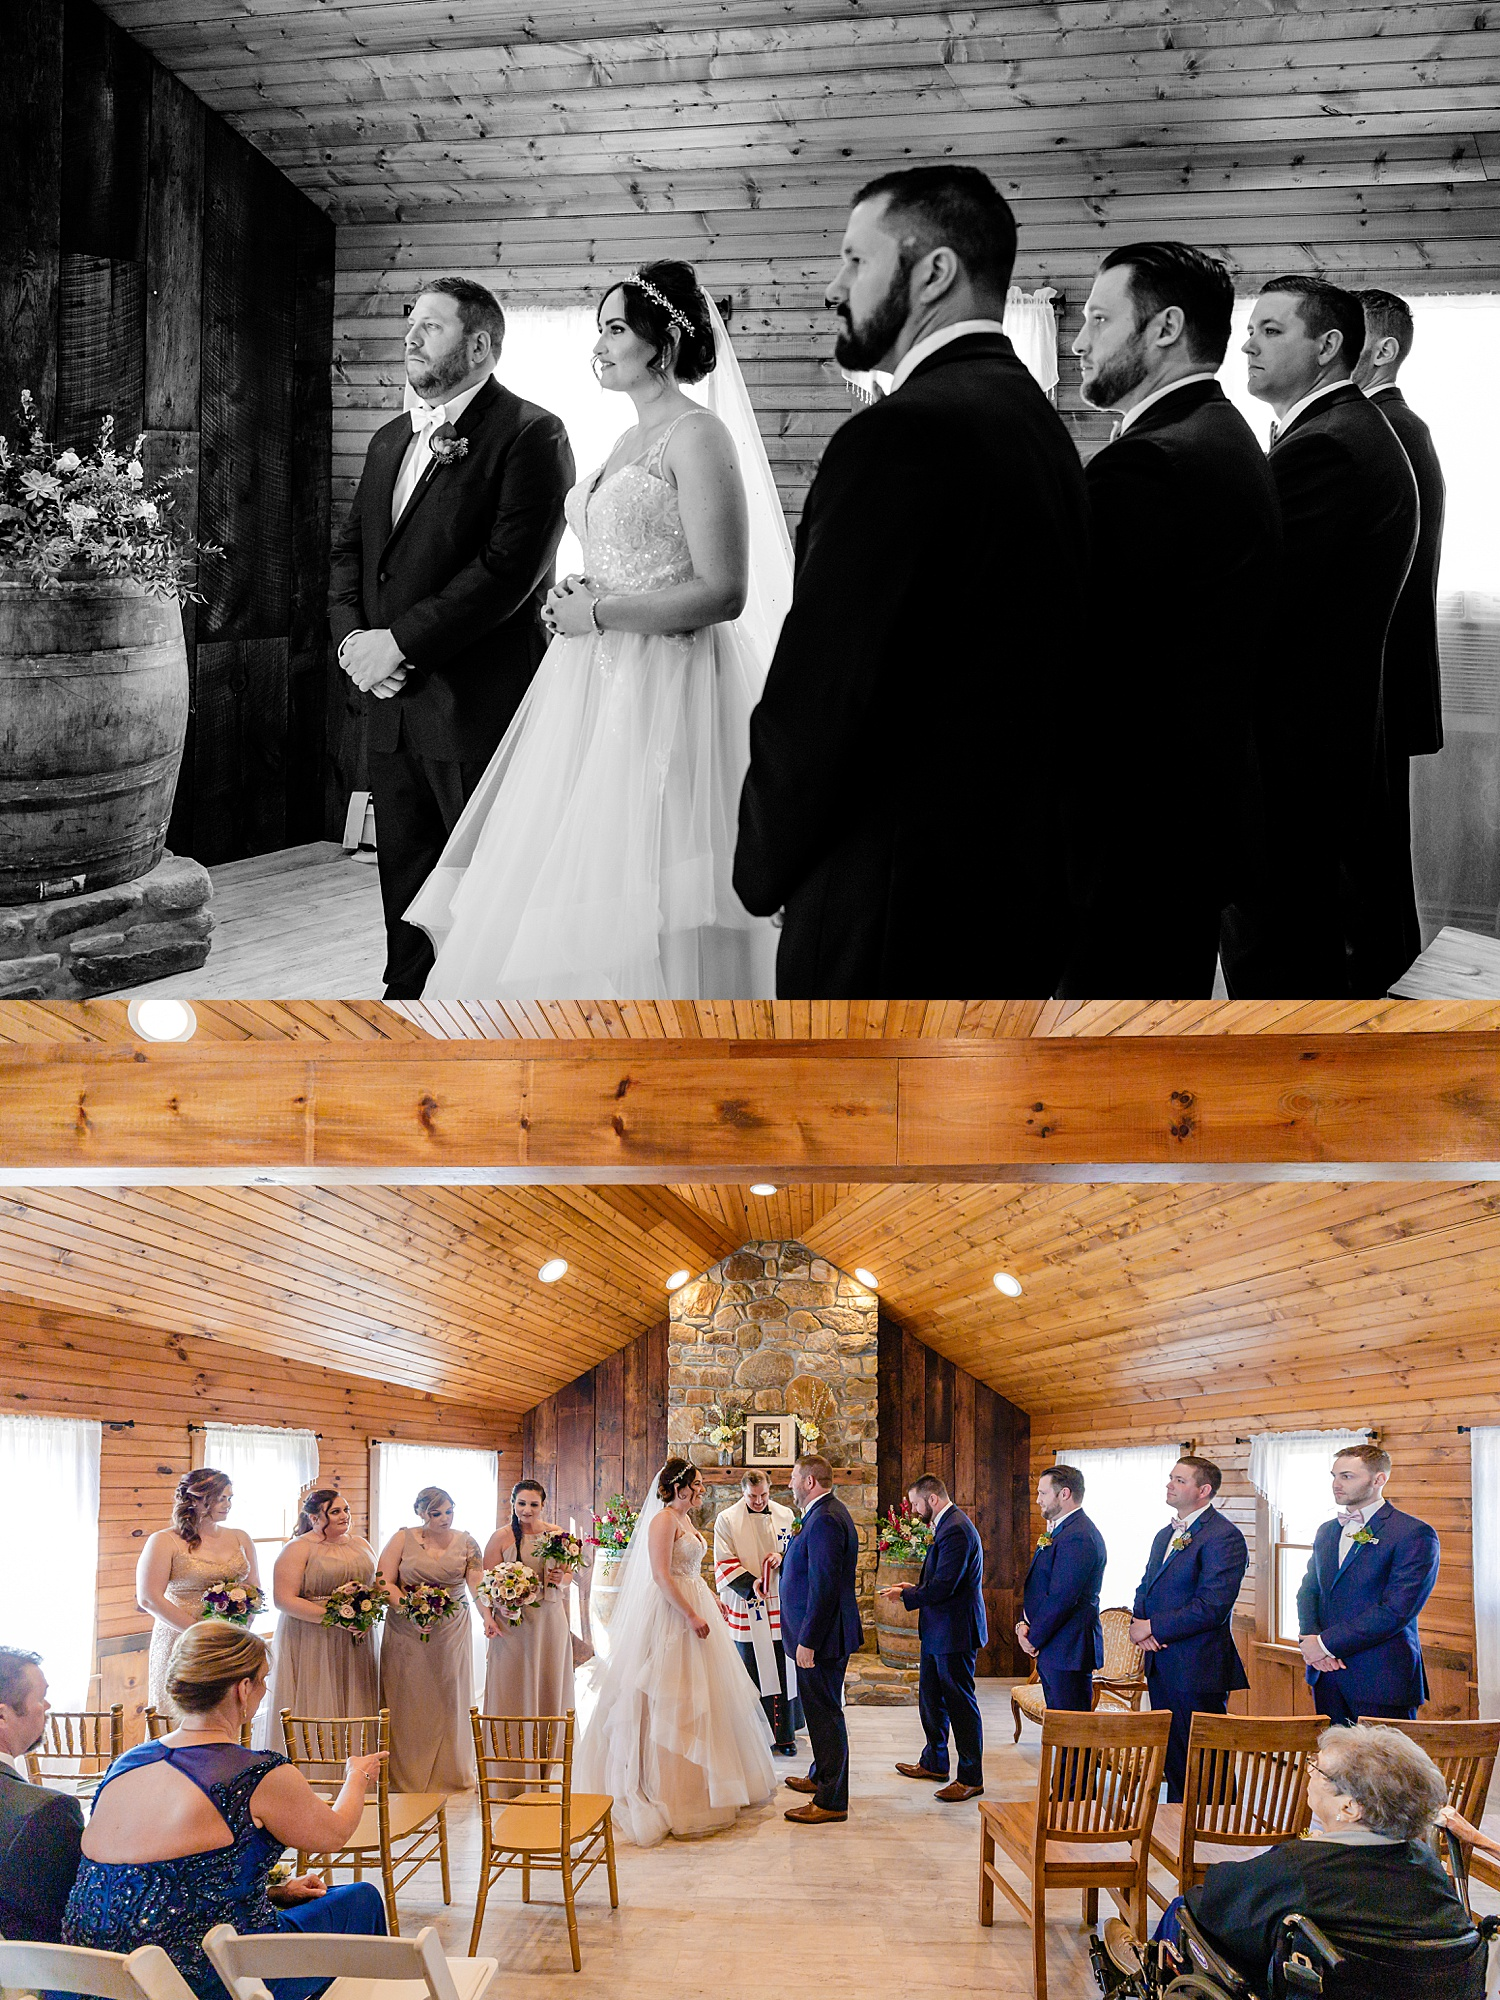 Bally Spring Inn Barto Pennsylvania wedding photographer Berks County